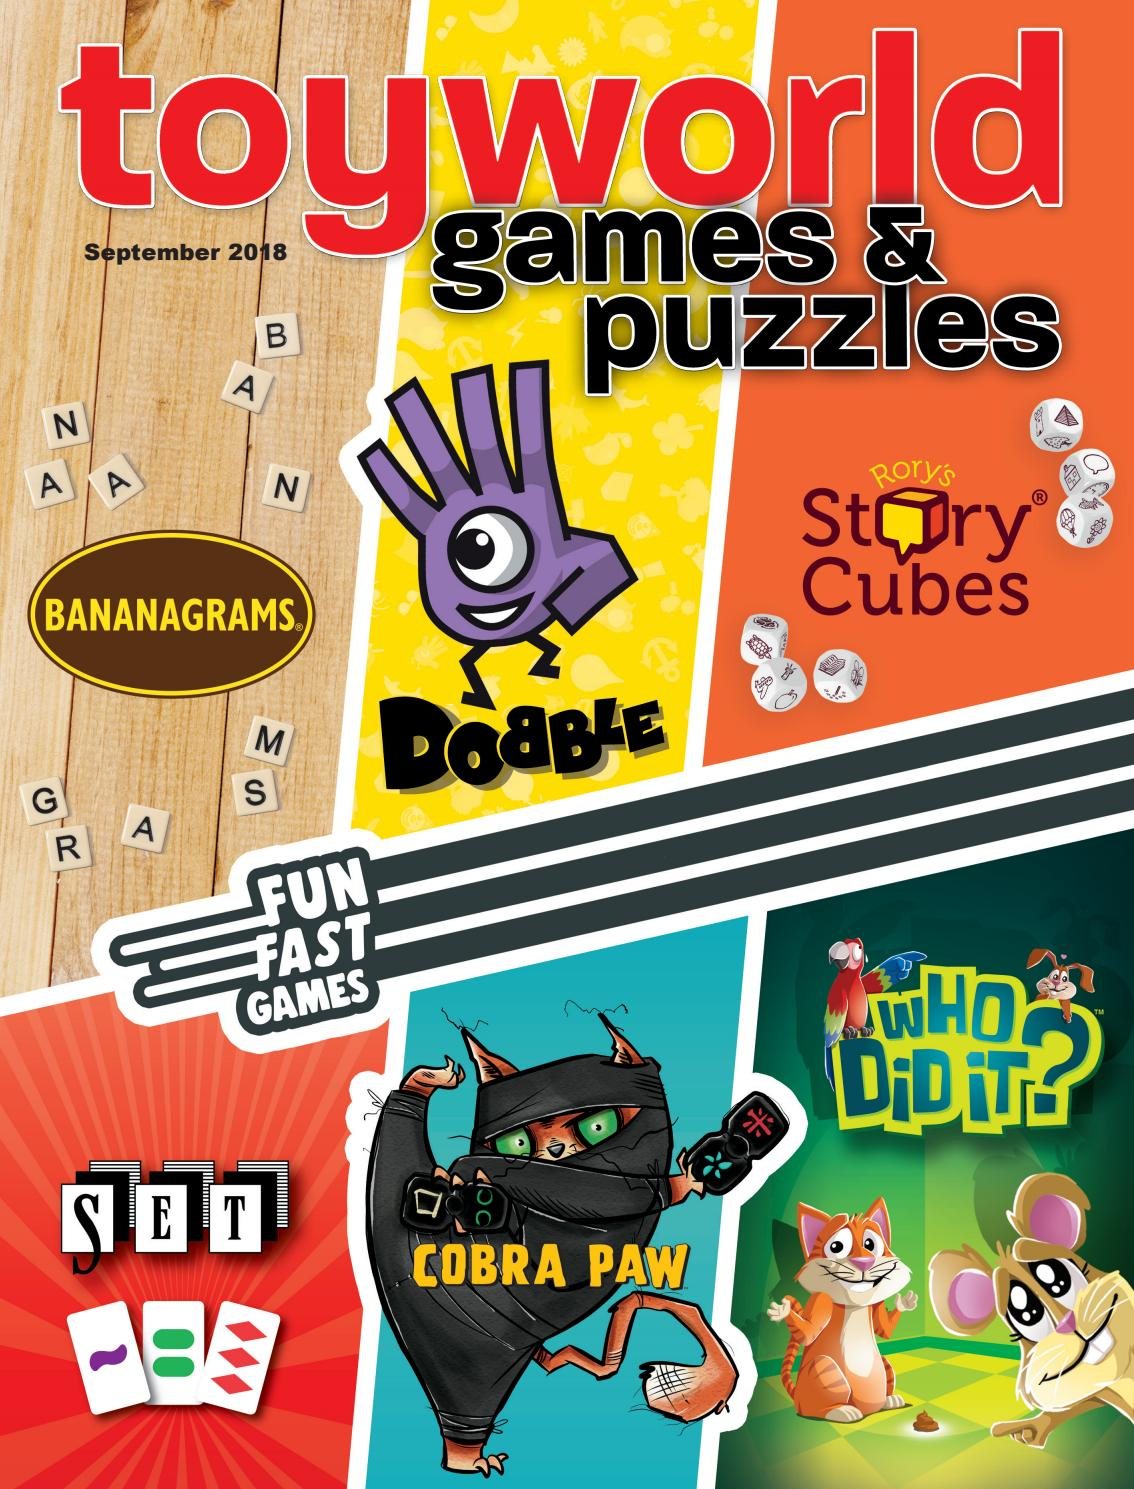 a4afdac4f Toy World games   puzzles September 2018 by TOYWORLD MAGAZINE - issuu